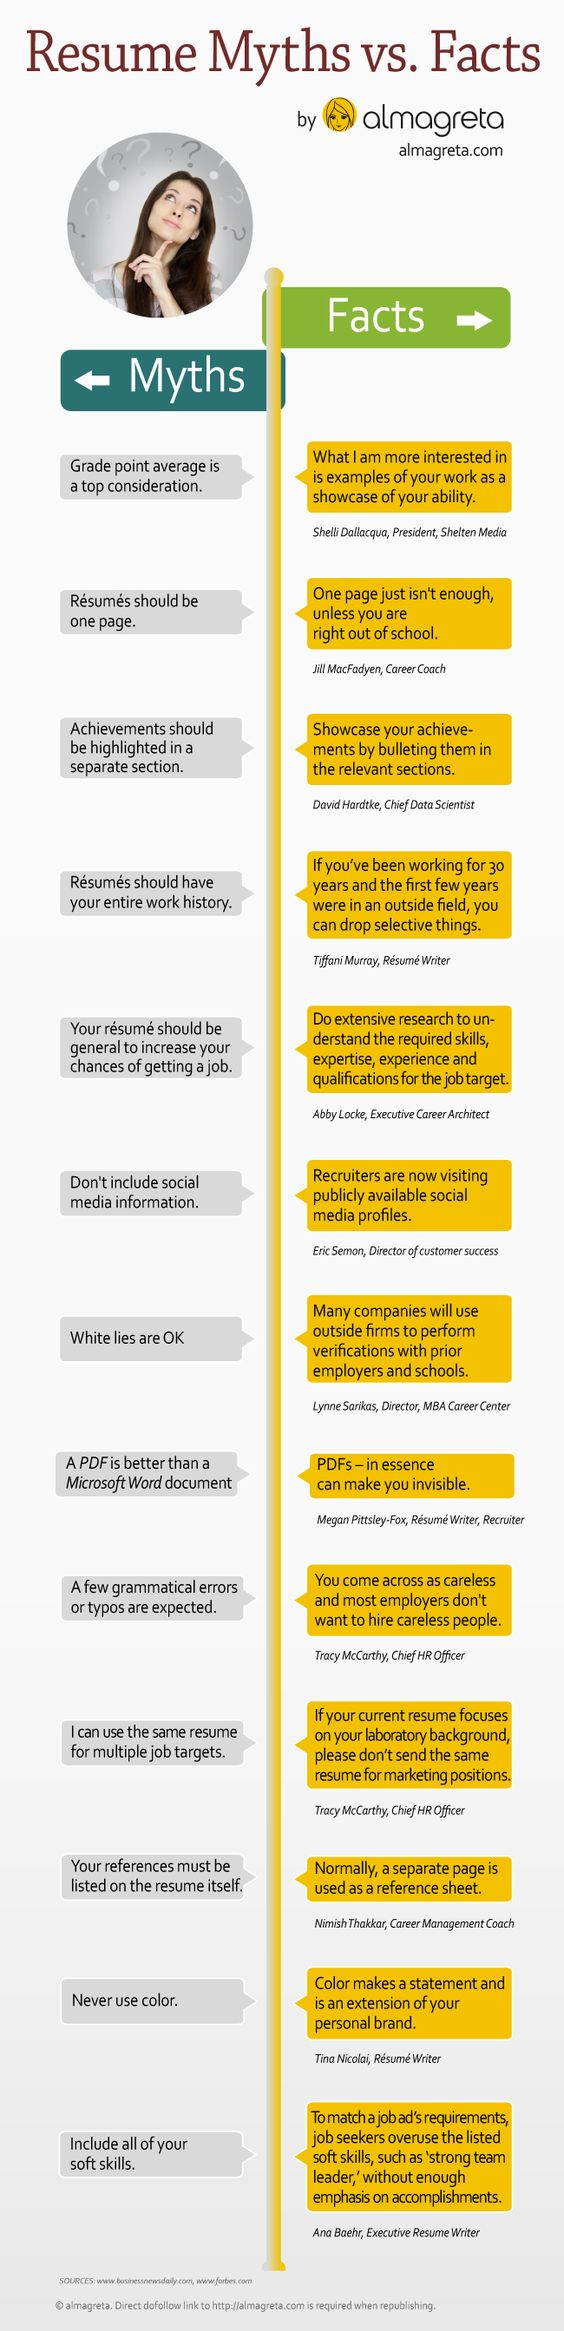 resume myths busted in this infographic tips from resume experts to get you hired